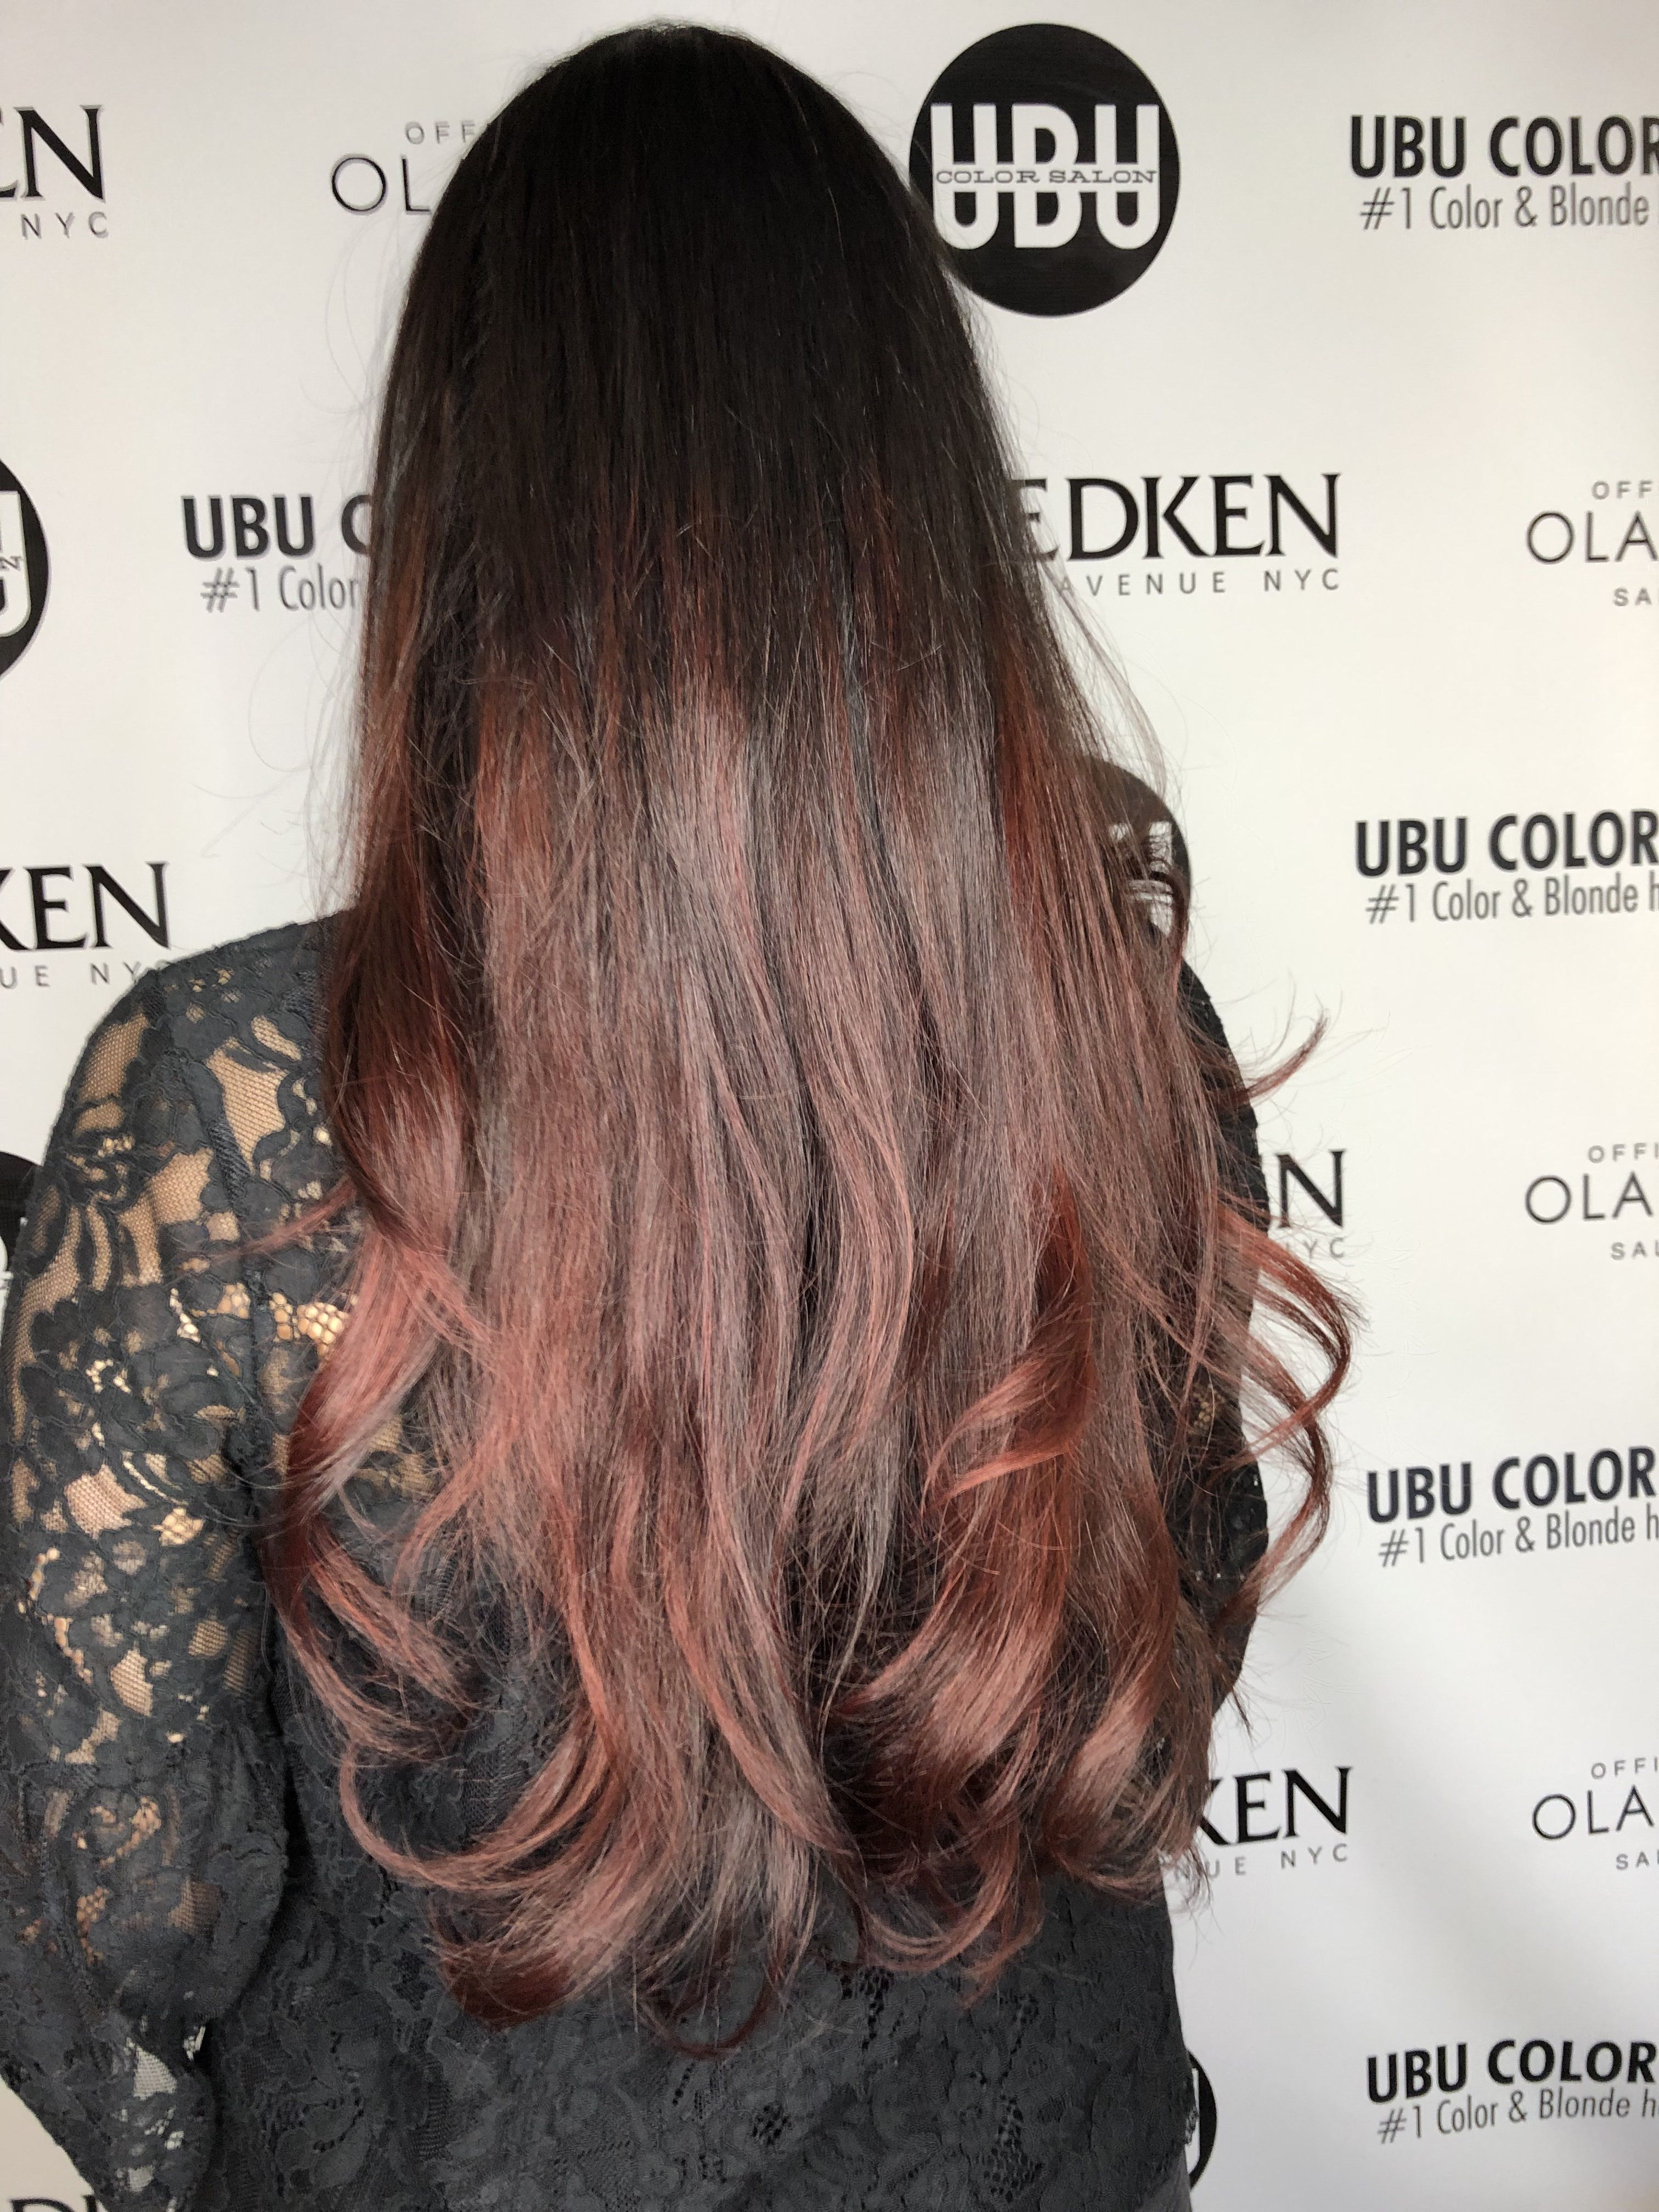 Home Ubu Color Salon In Tampa Fl Long Hair Styles Hair Styles Beauty